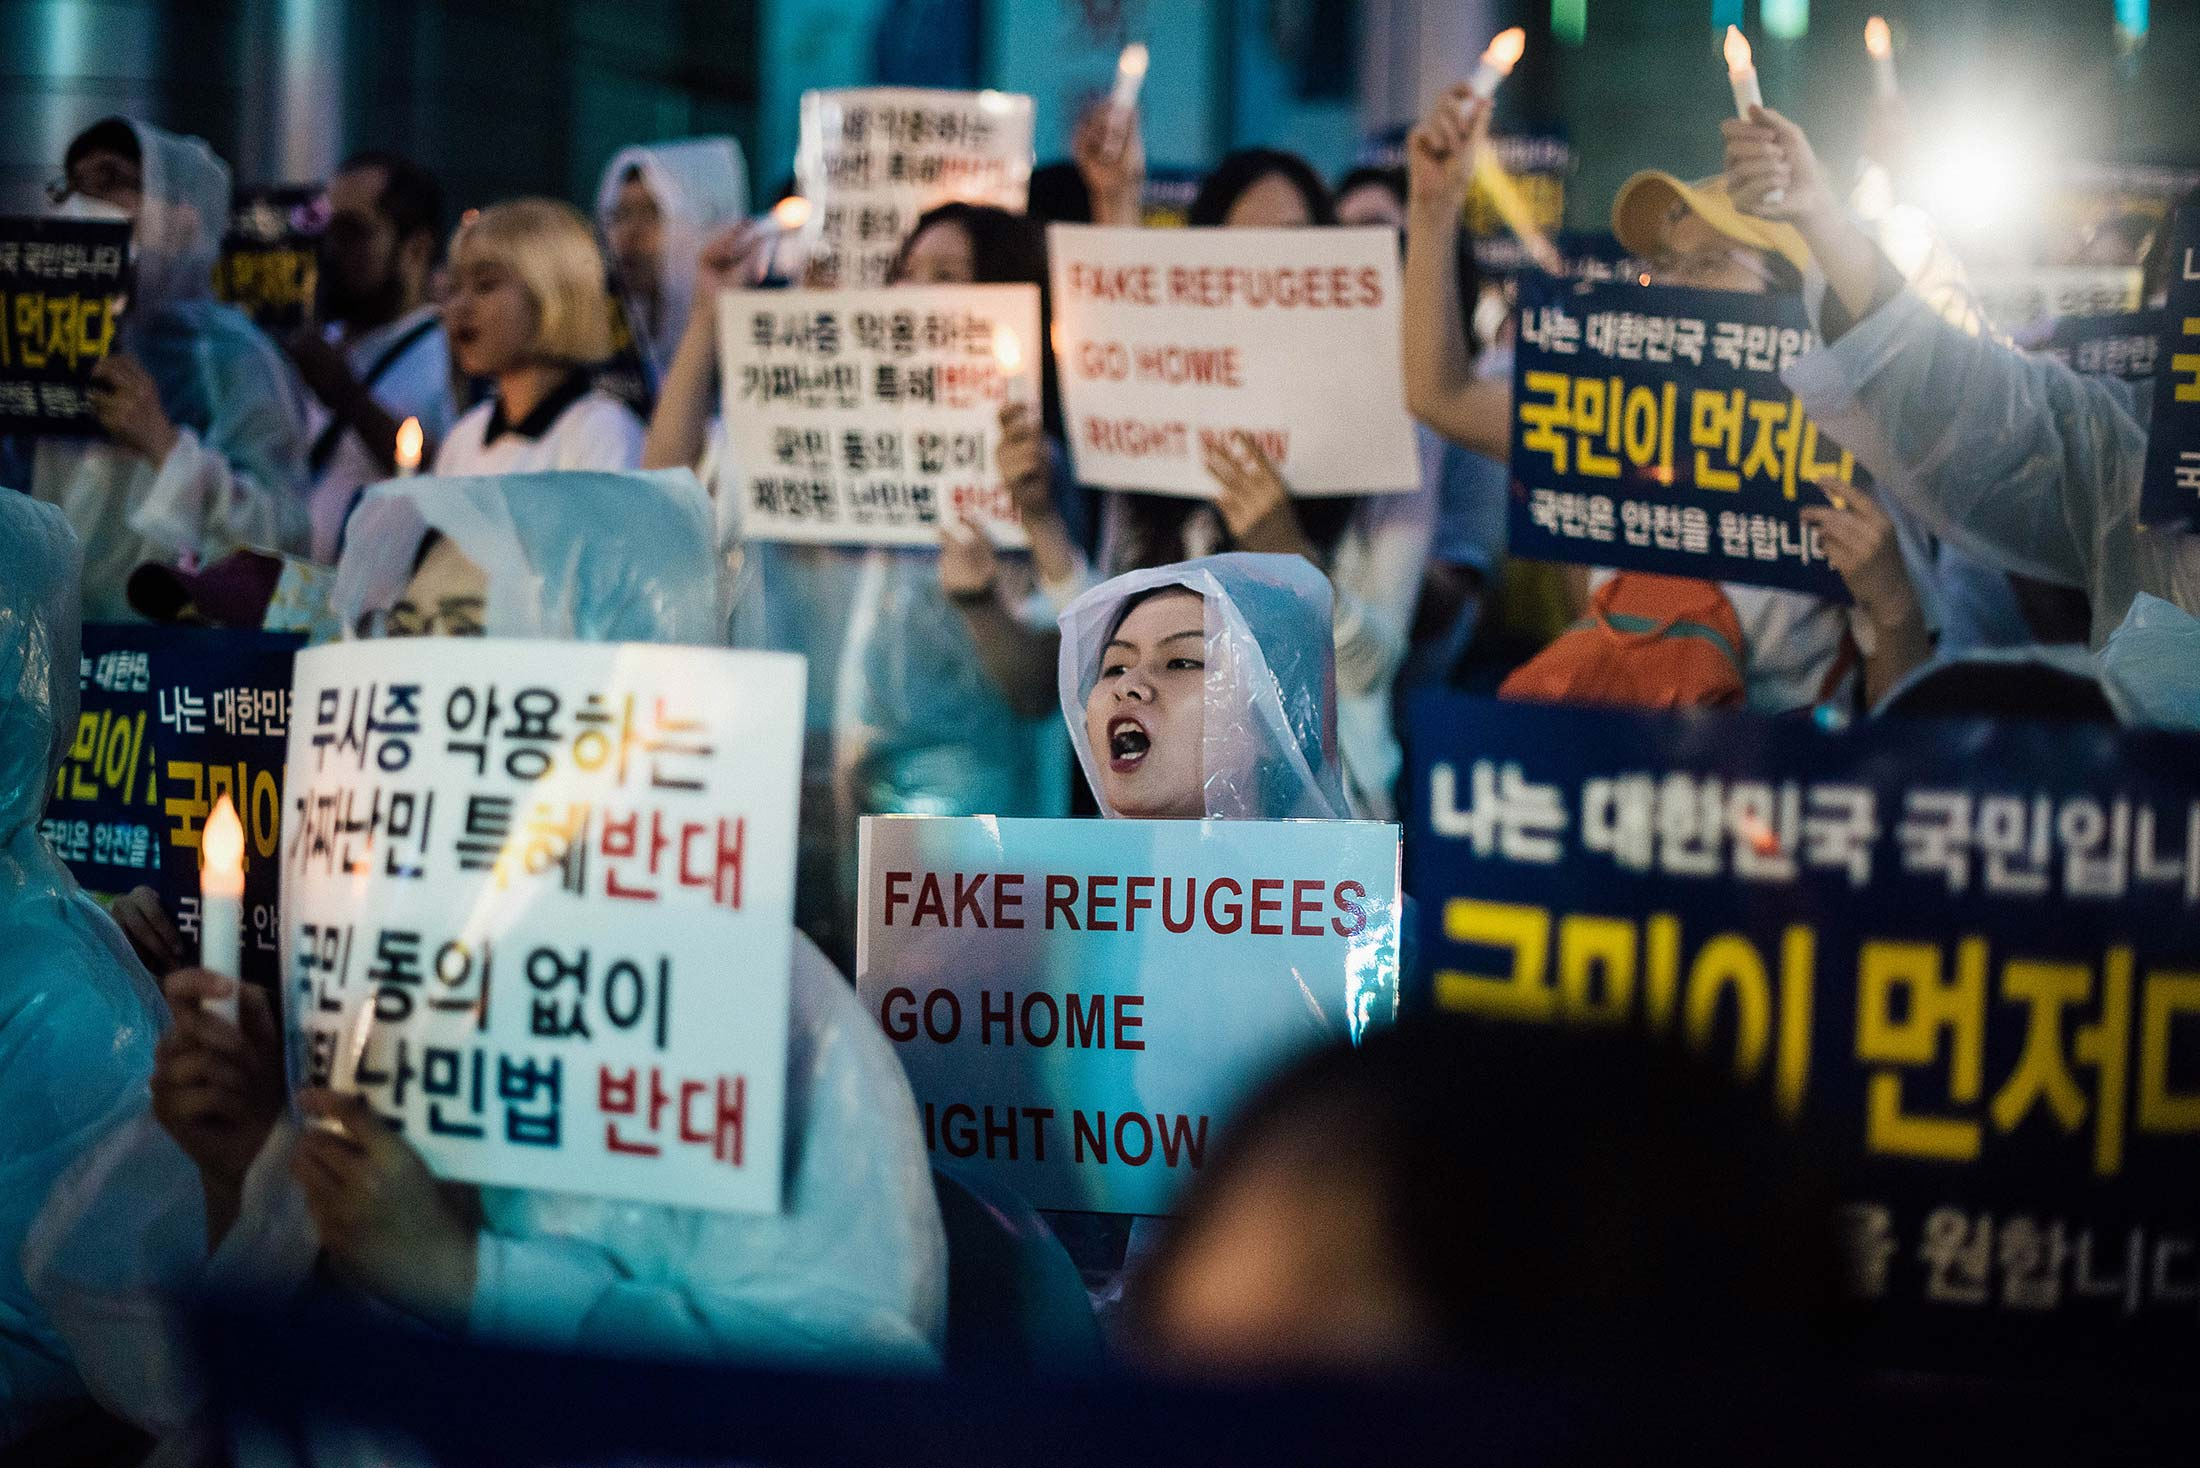 Anti-immigration activists attend a protest against a group of asylum-seekers from Yemen.